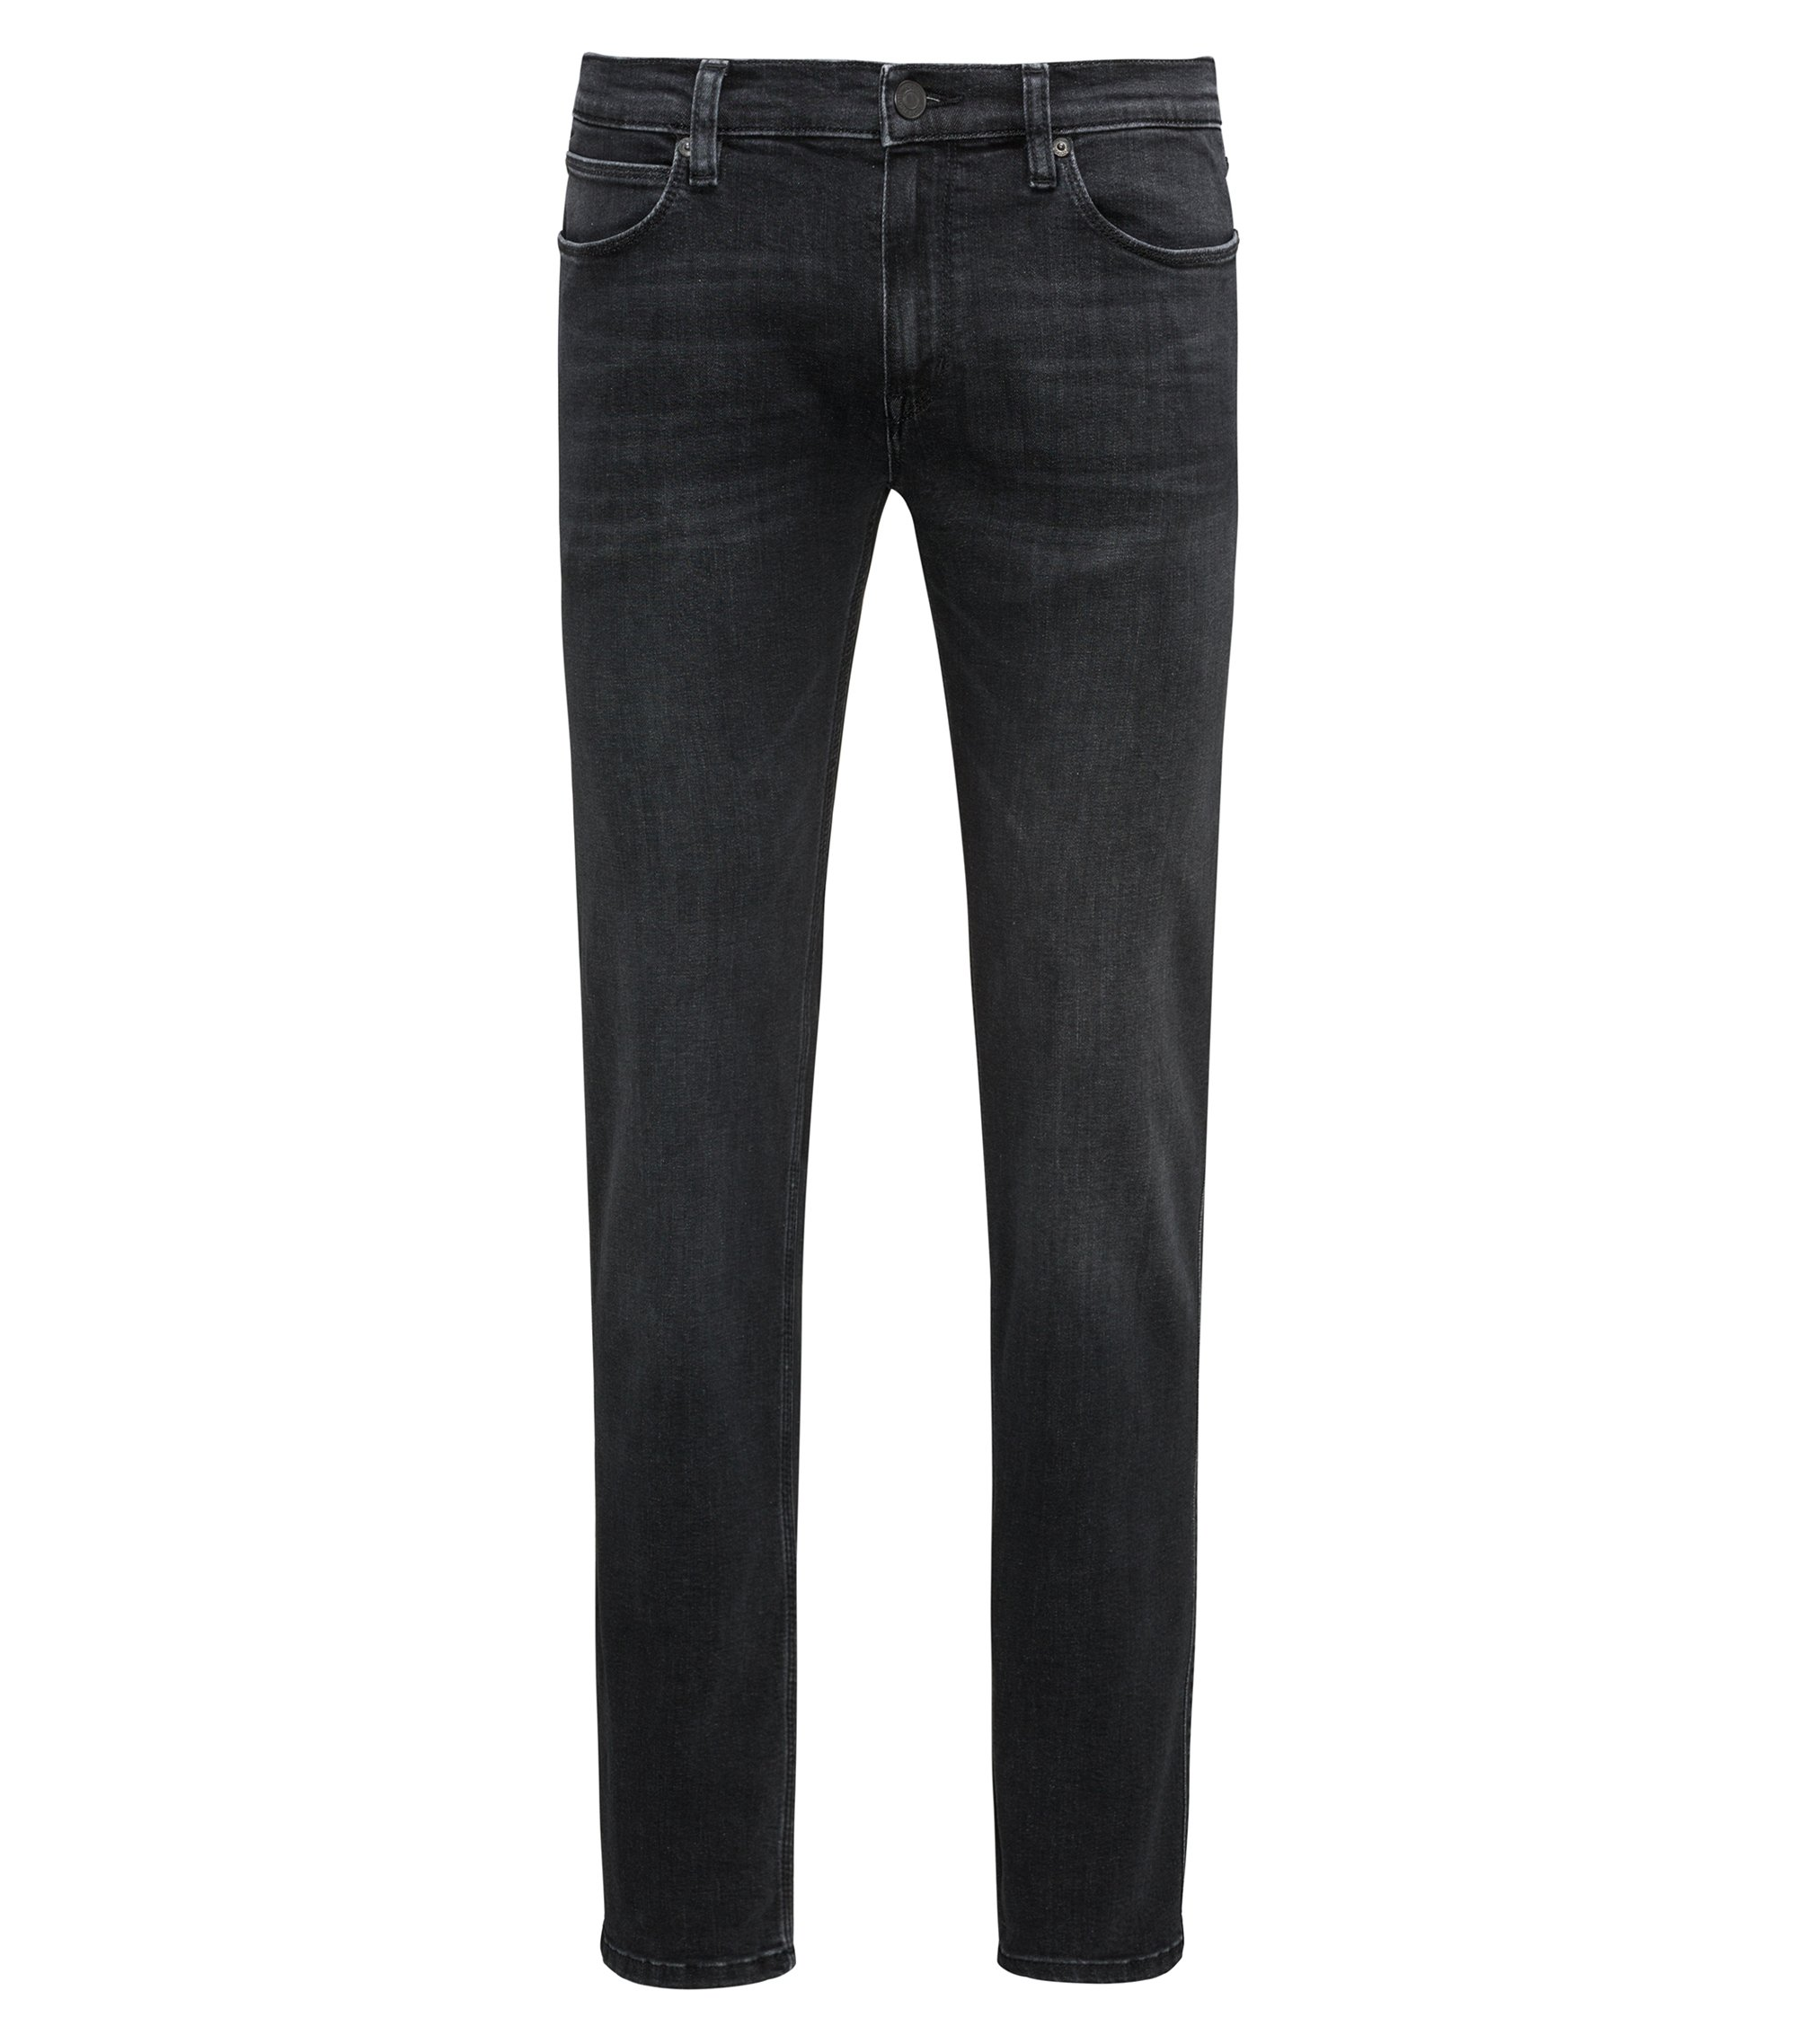 Jean taille basse Slim Fit en denim stretch, Gris sombre